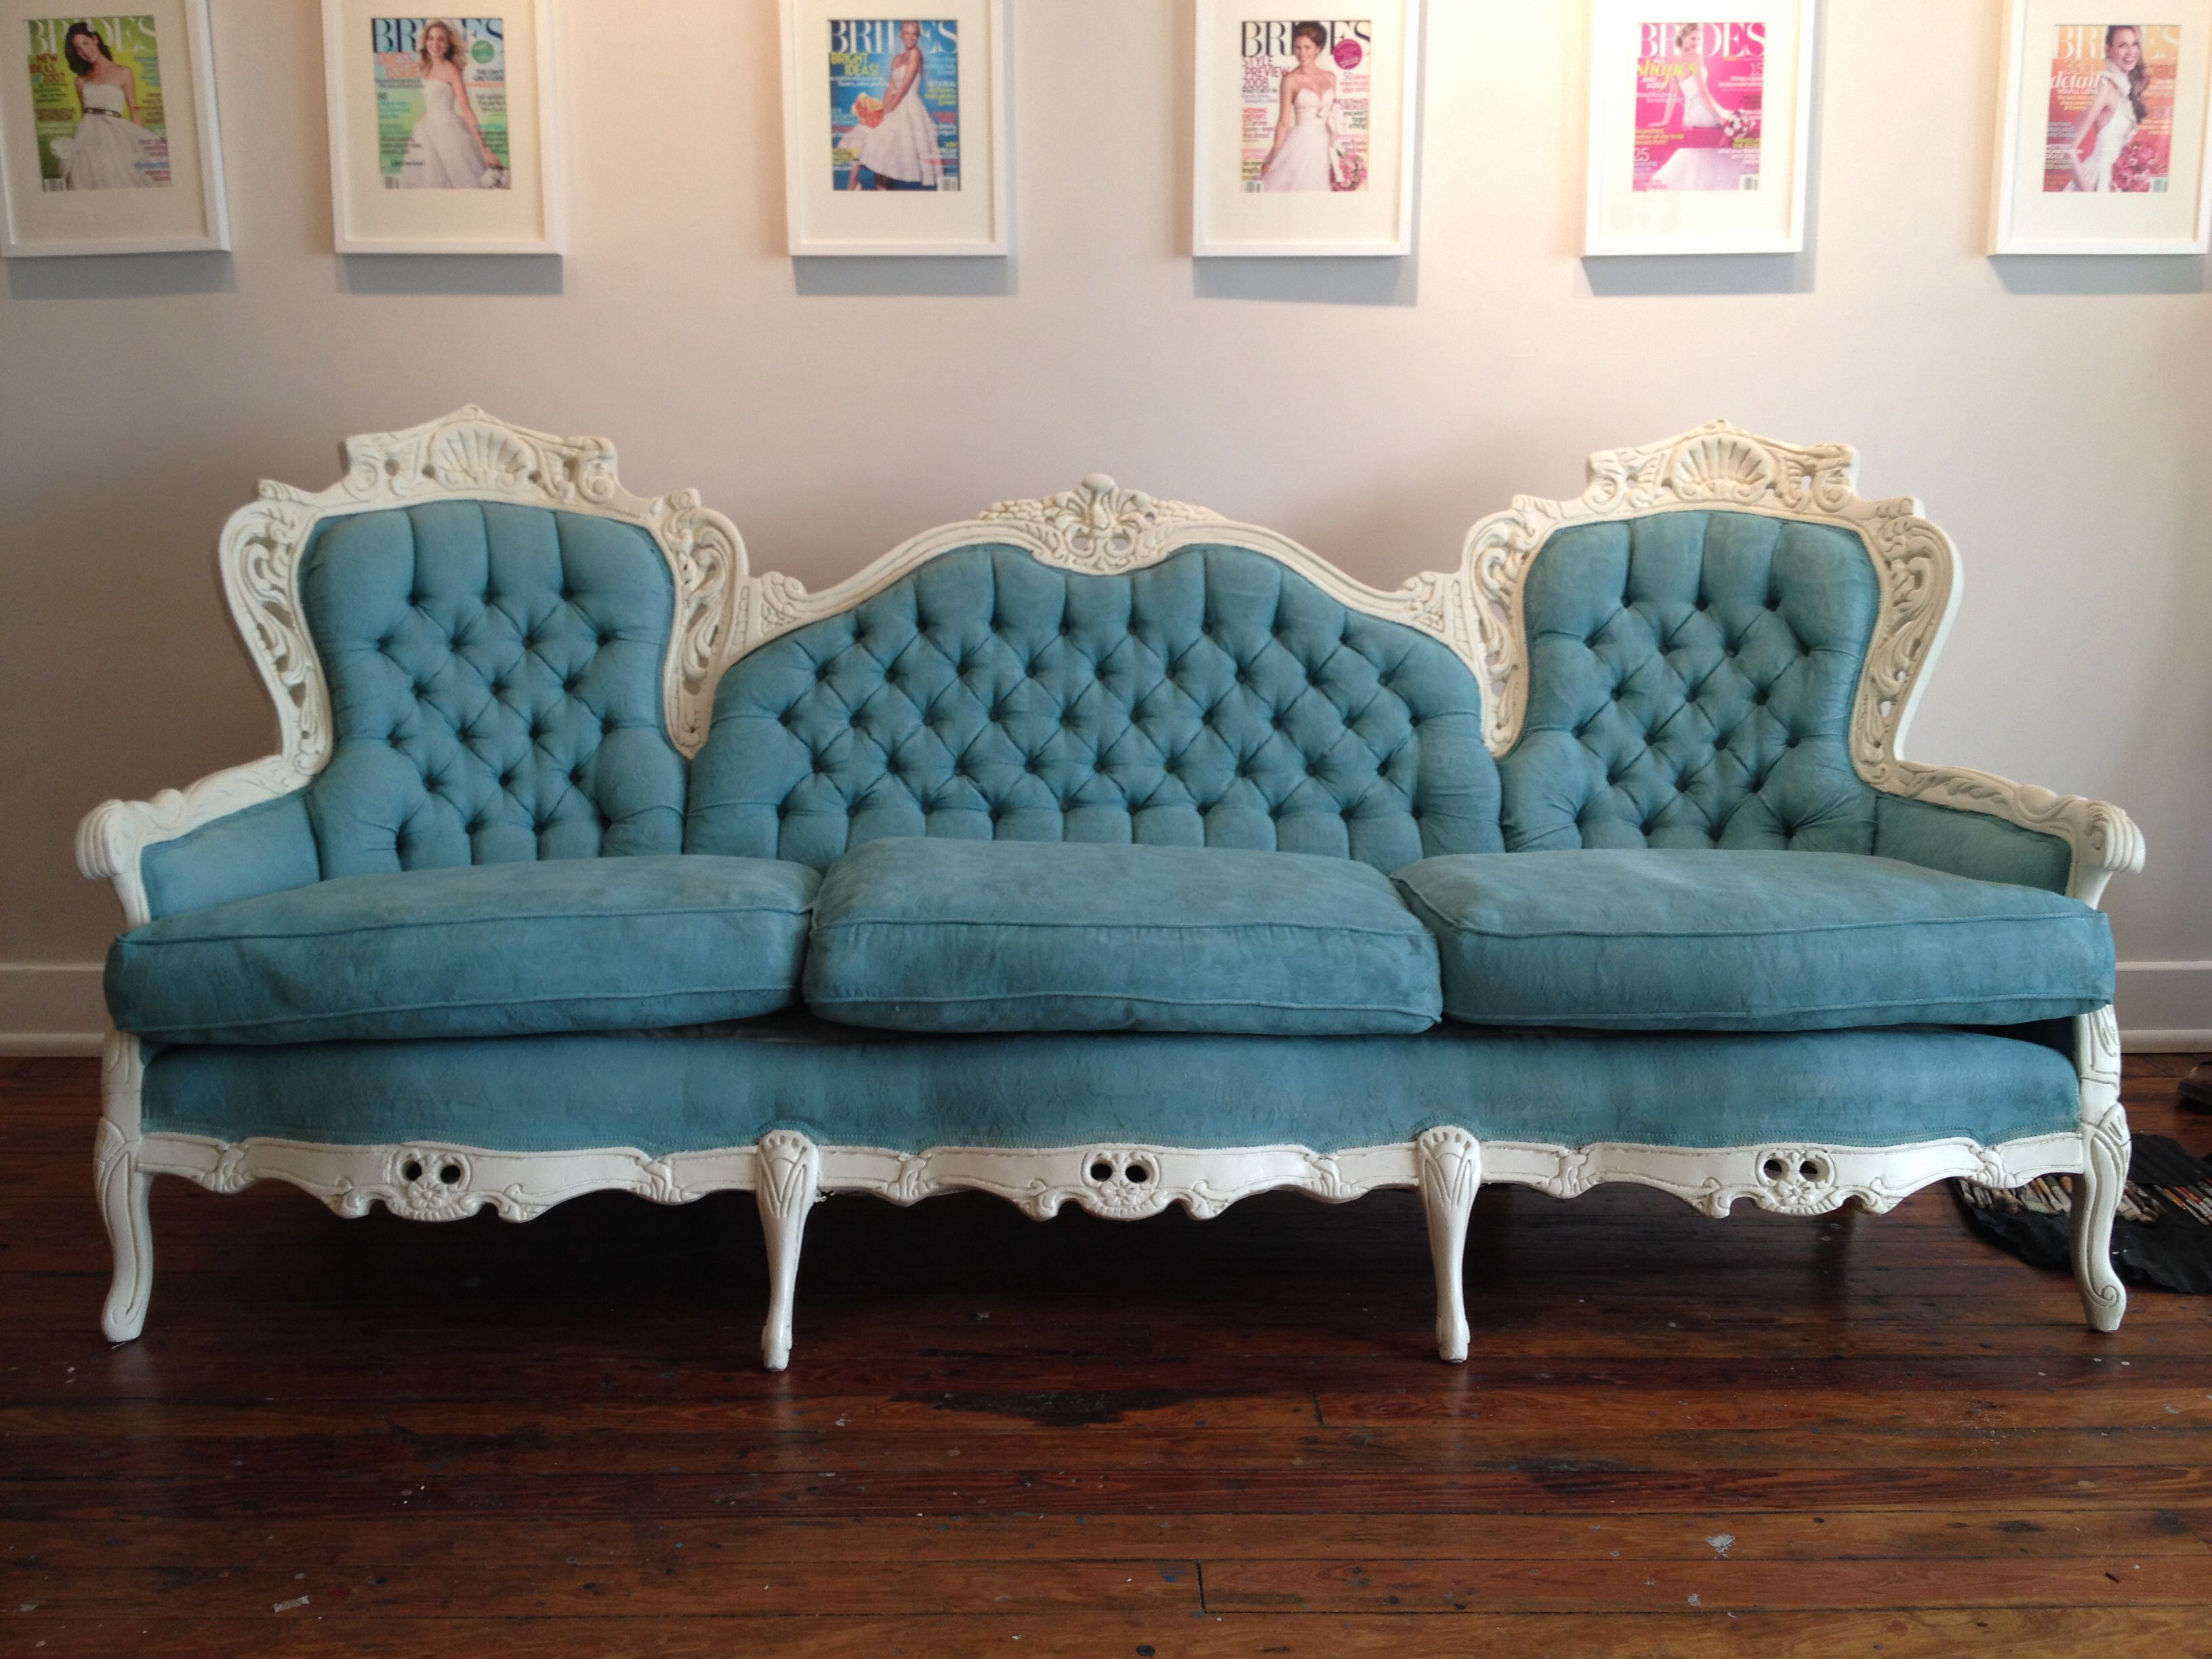 Vintage Italian Sofa redesigned with Chalk Paint in Provence and